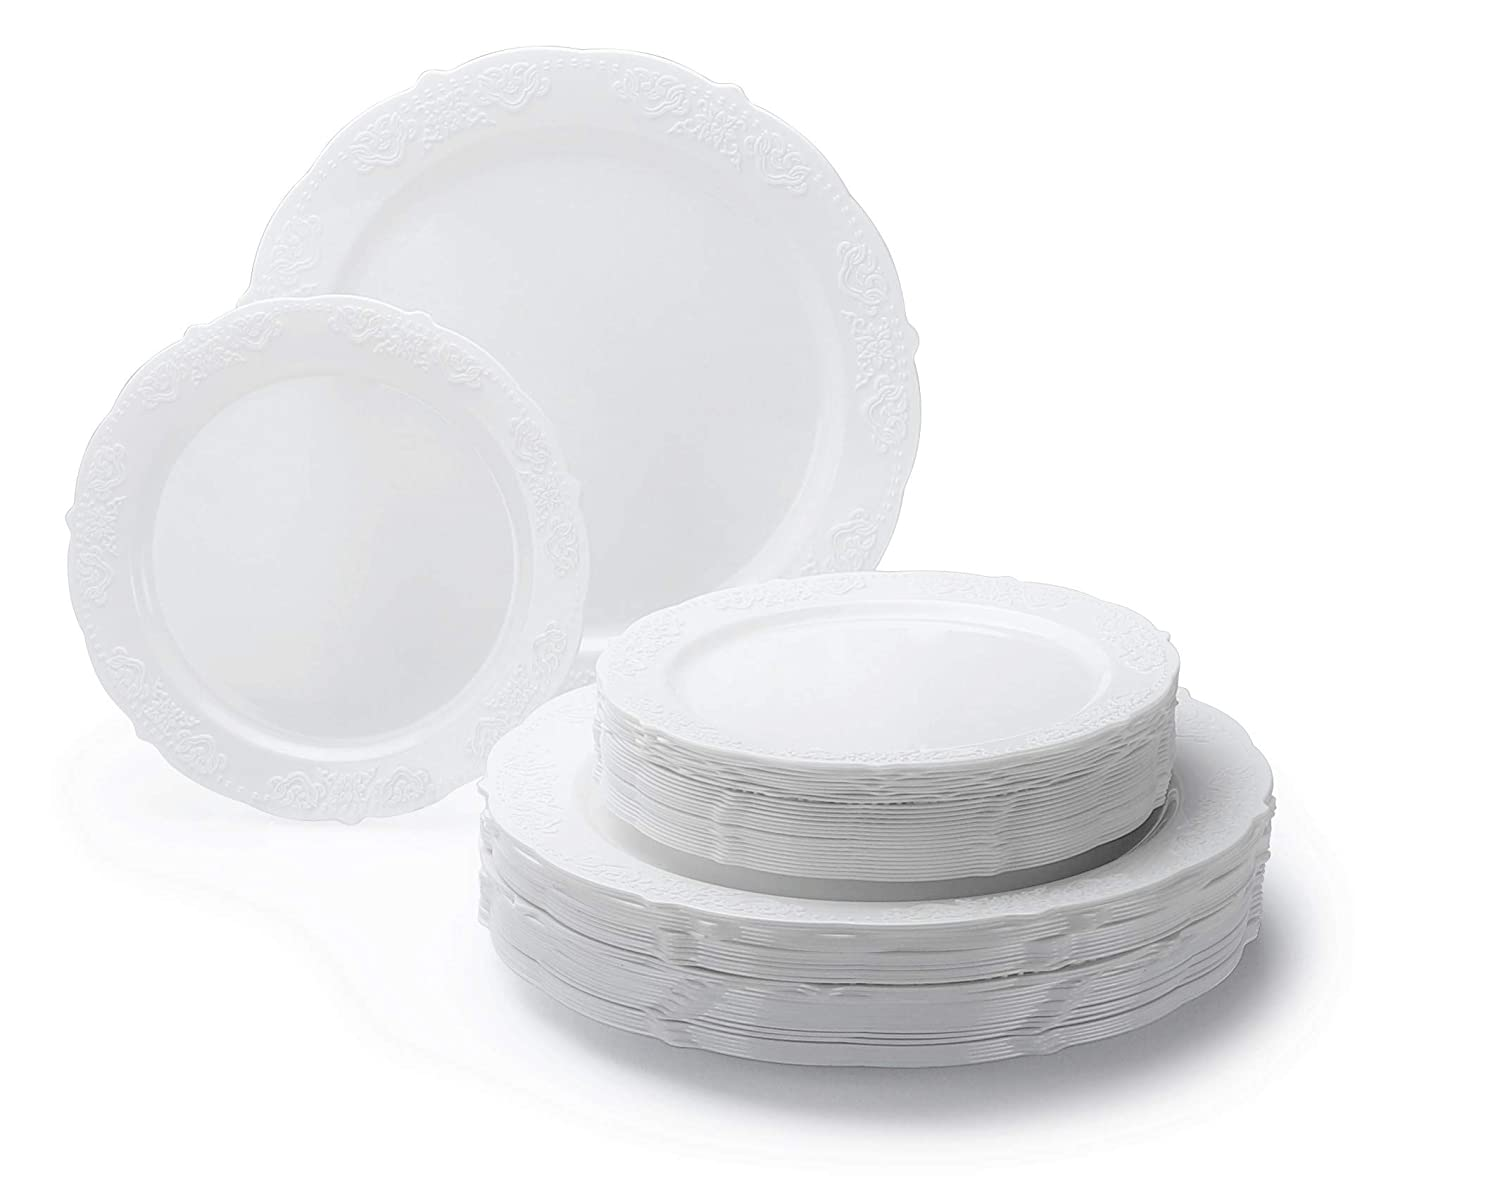 Amazoncom Occasions 50 Piece Party Disposable Dinnerware Set